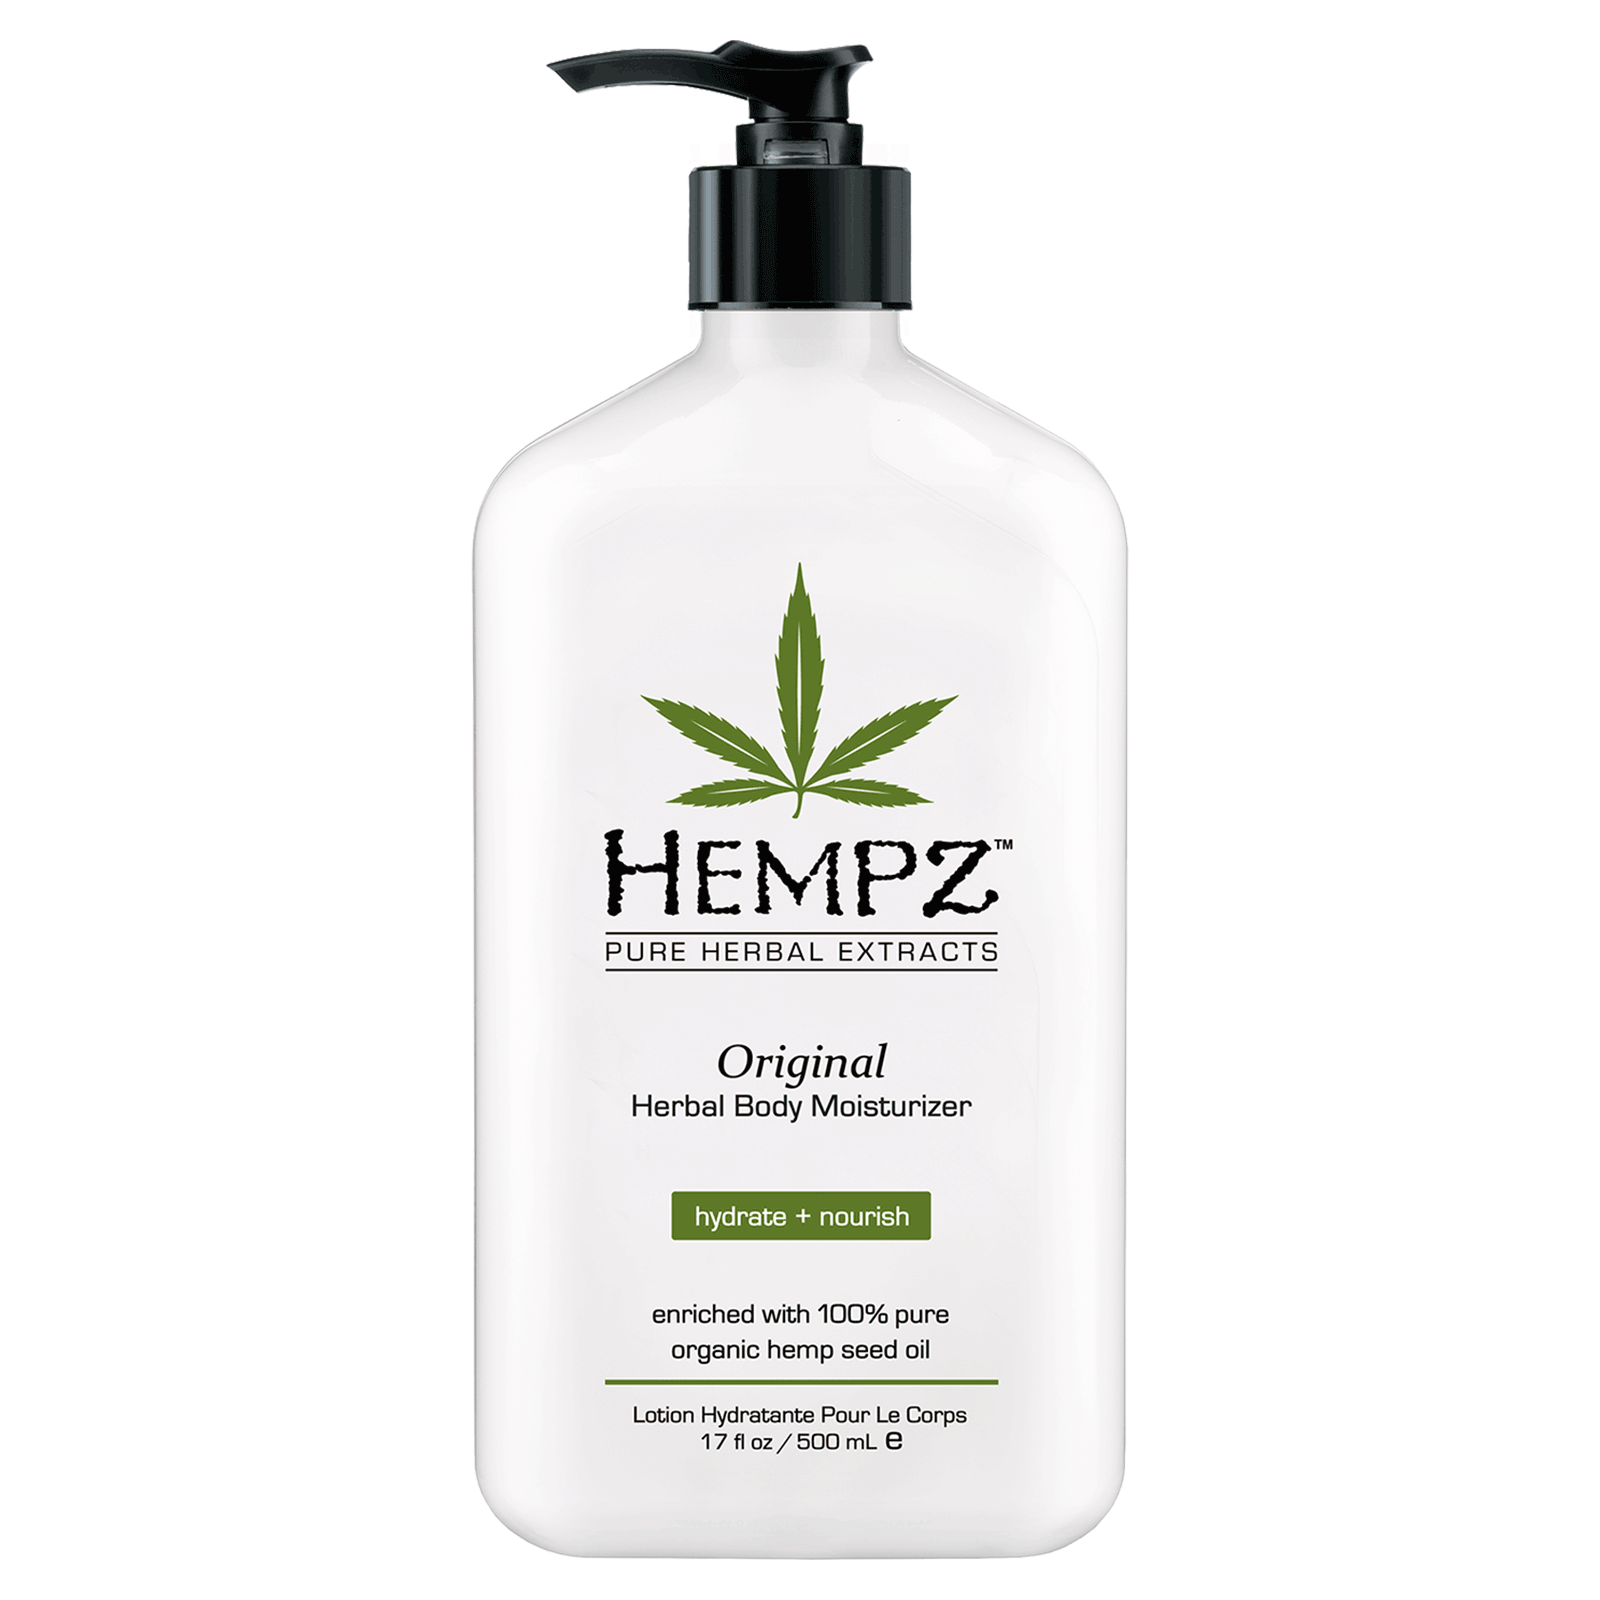 Original Body Herbal Moisturizer